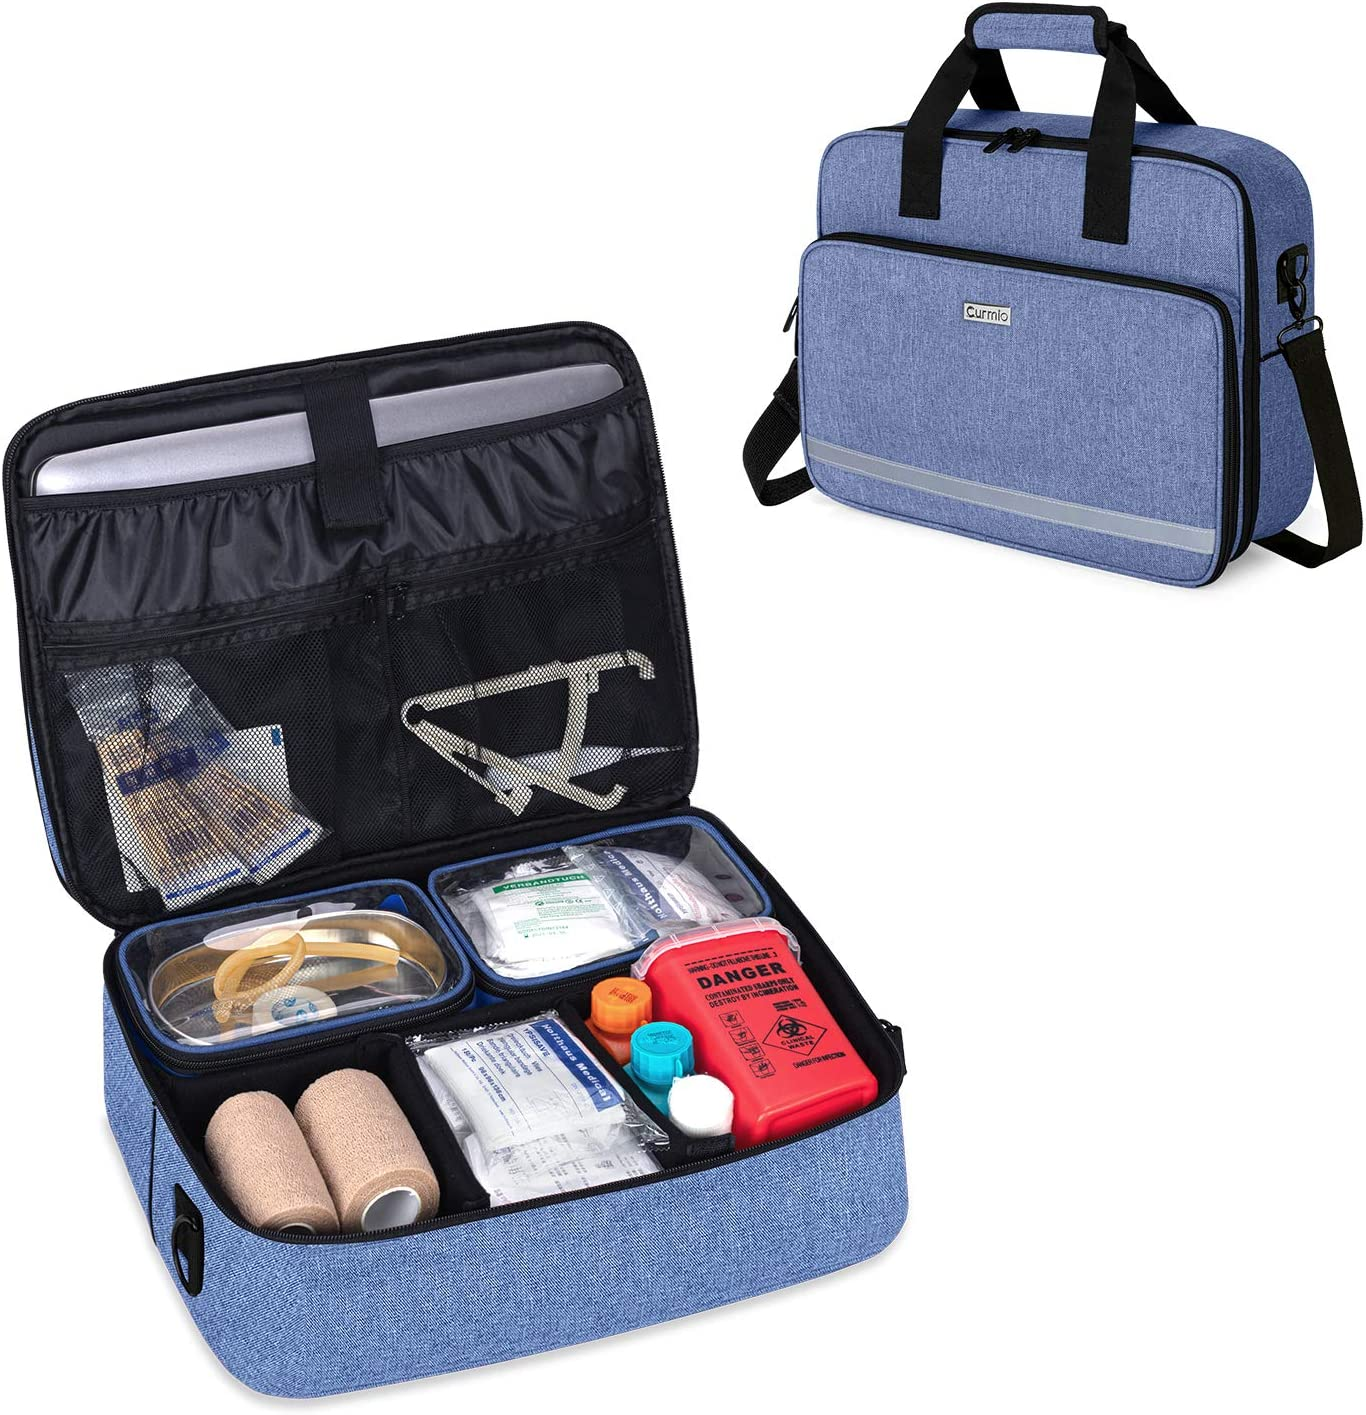 CURMIO Nursing Bags for Nurses Home Health, Small Medical Supplies Bag with 2 Detachable Transparent Pouches for Home Visits, Health Care, Hospice, Blue (Patented Design)